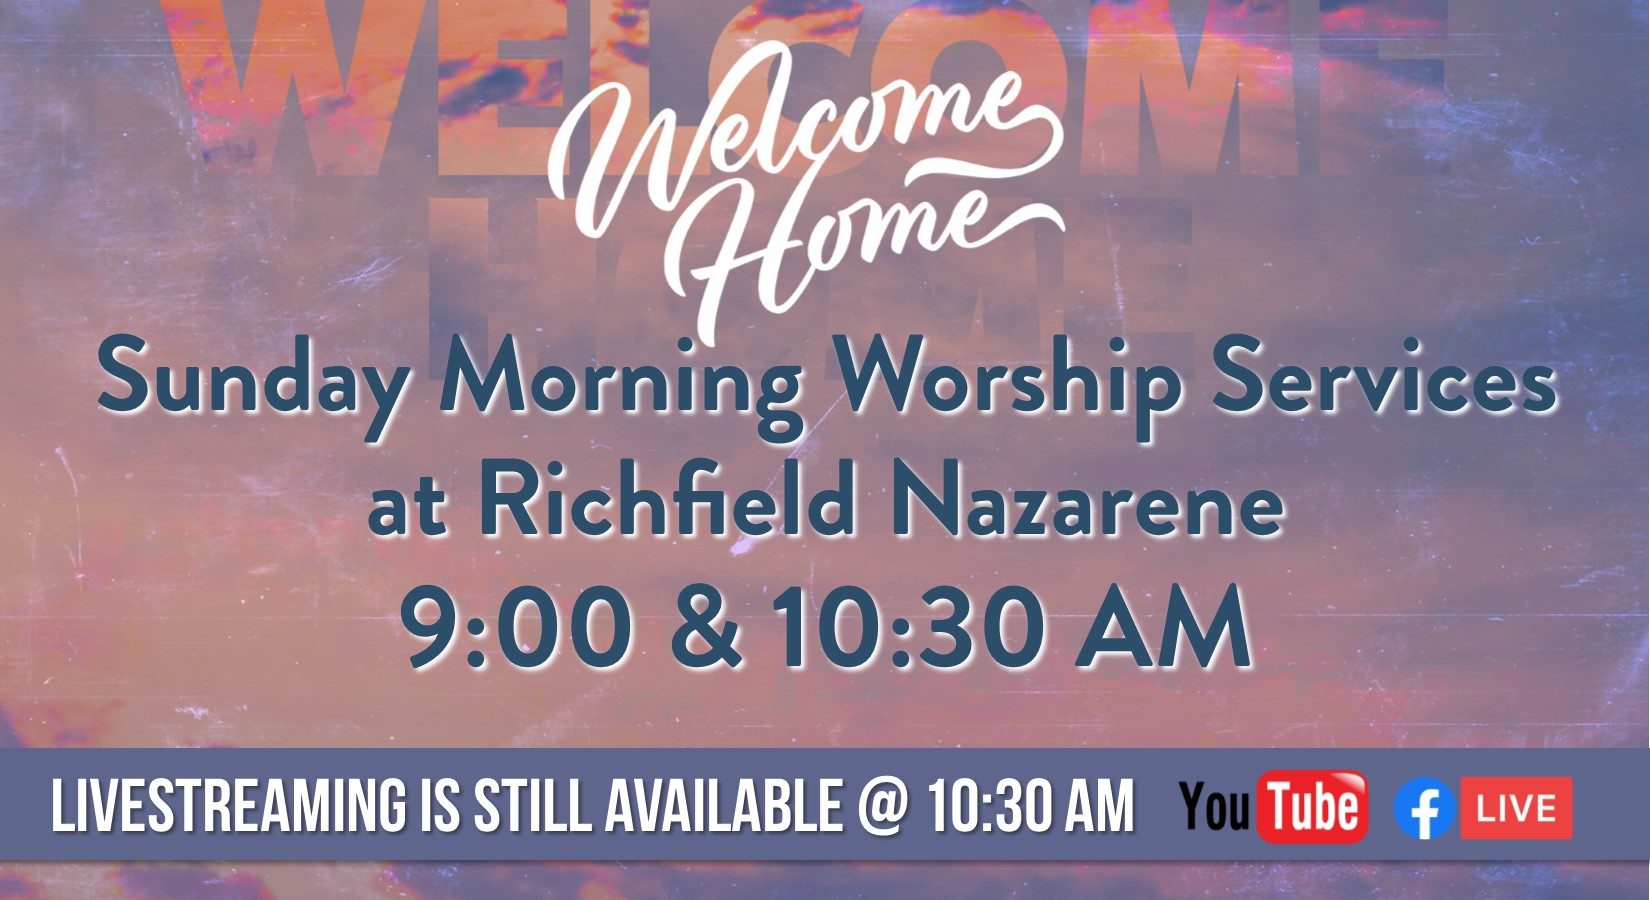 Welcome Home worship schedule